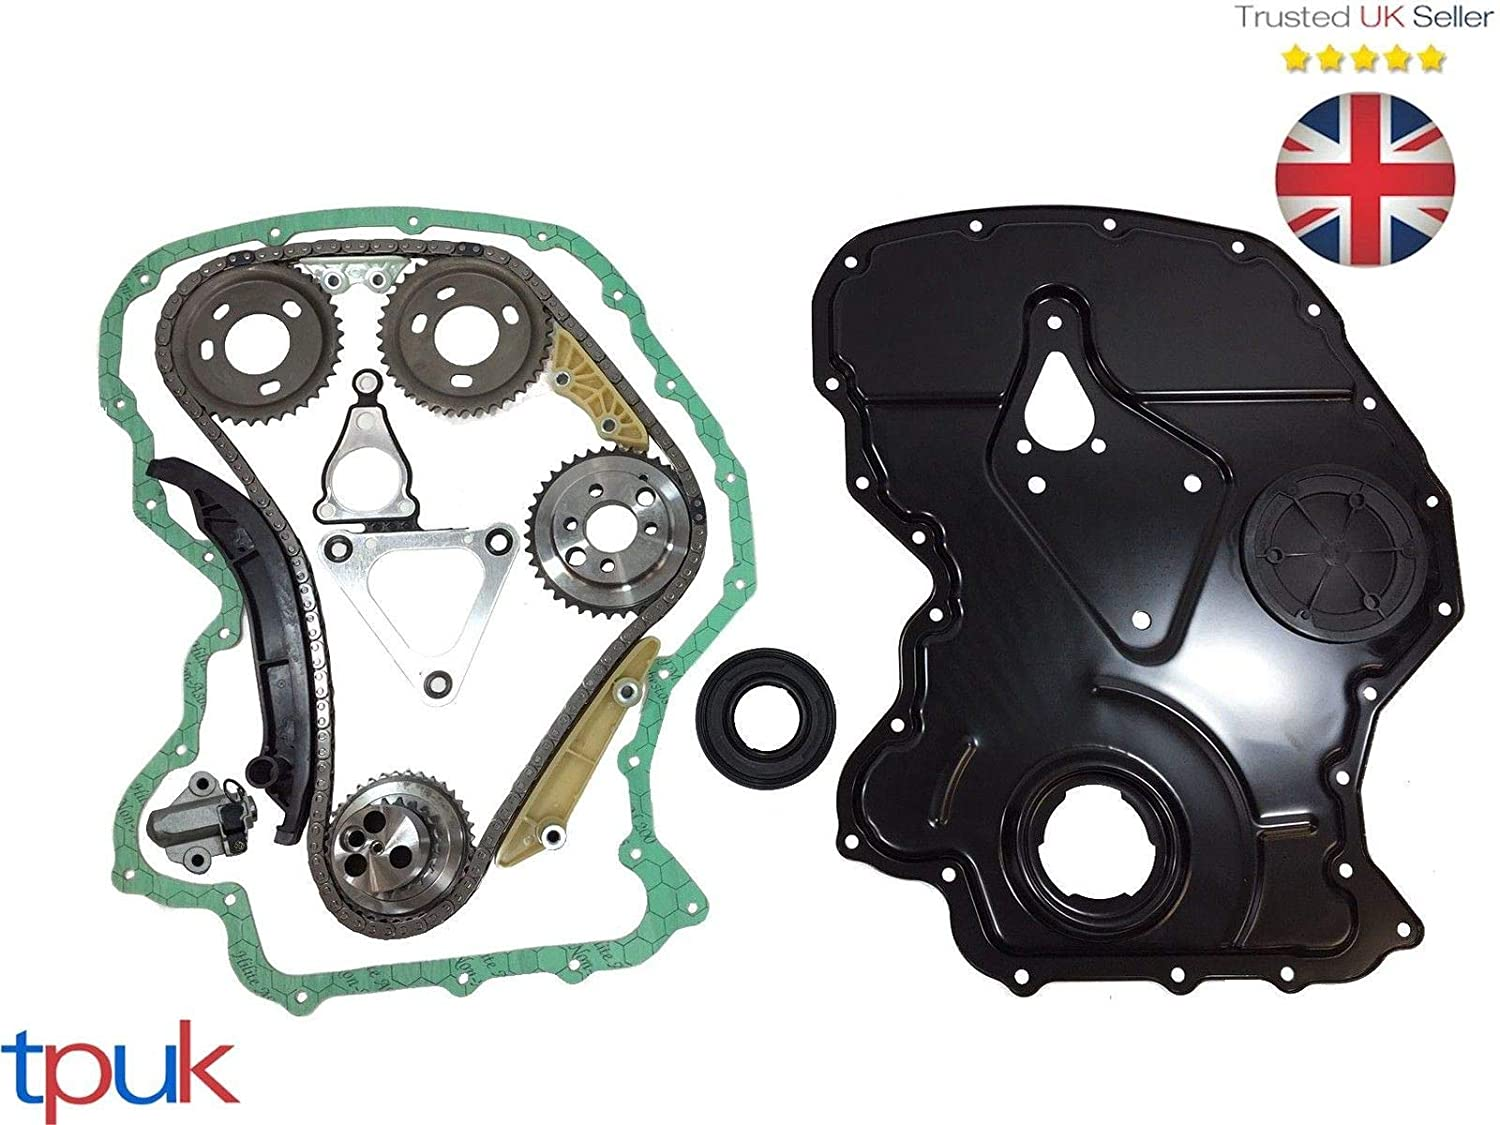 TRANSIT TIMING CHAIN KIT 2.4 RWD 2006- MK7 FRONT COVER/GASKET CRANK SEAL TPUK